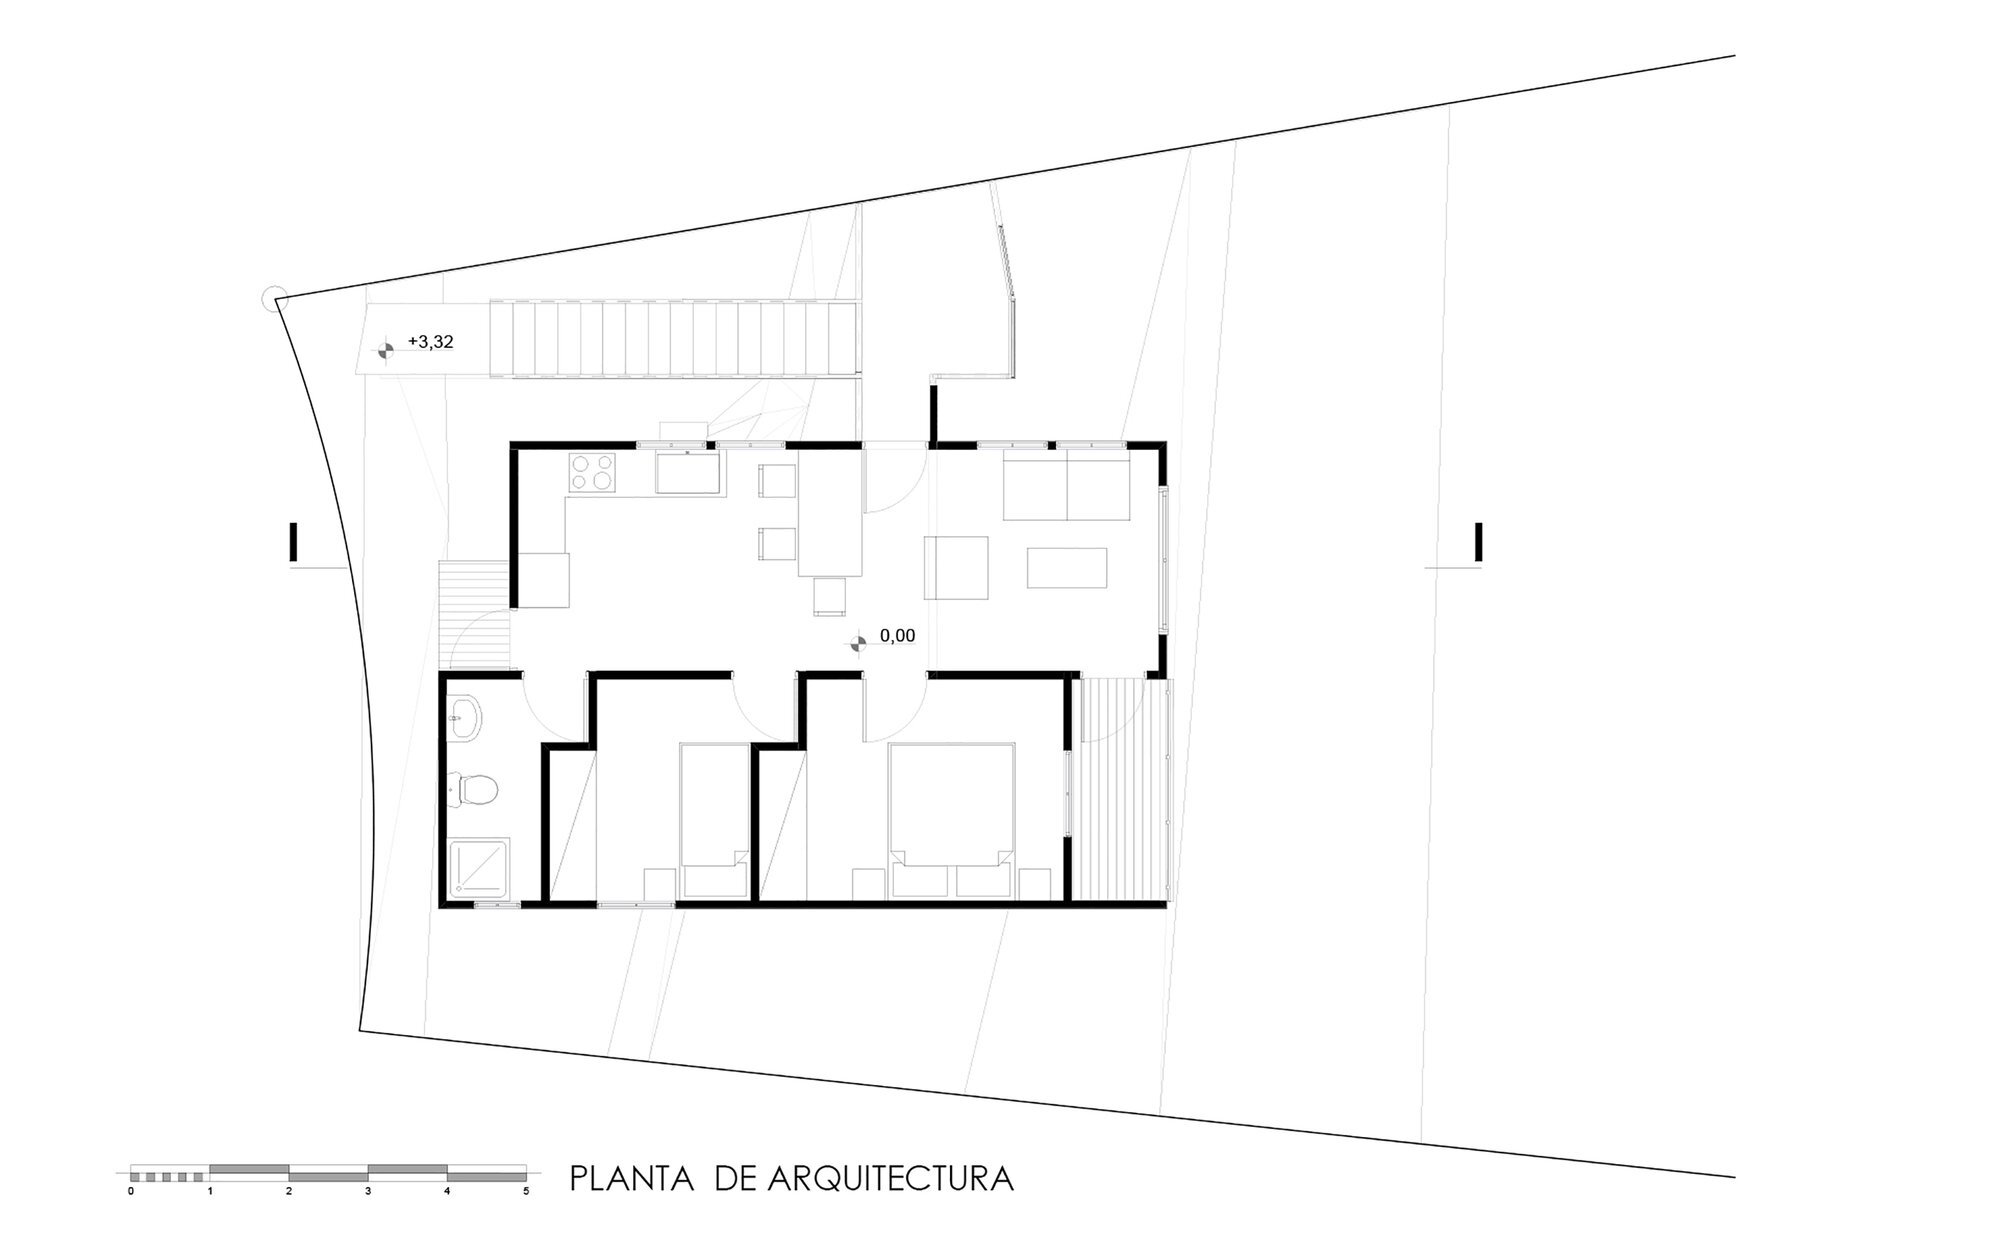 Suarez House - Arq2g arquitectura - Chile - Floor Plan - Humble Homes